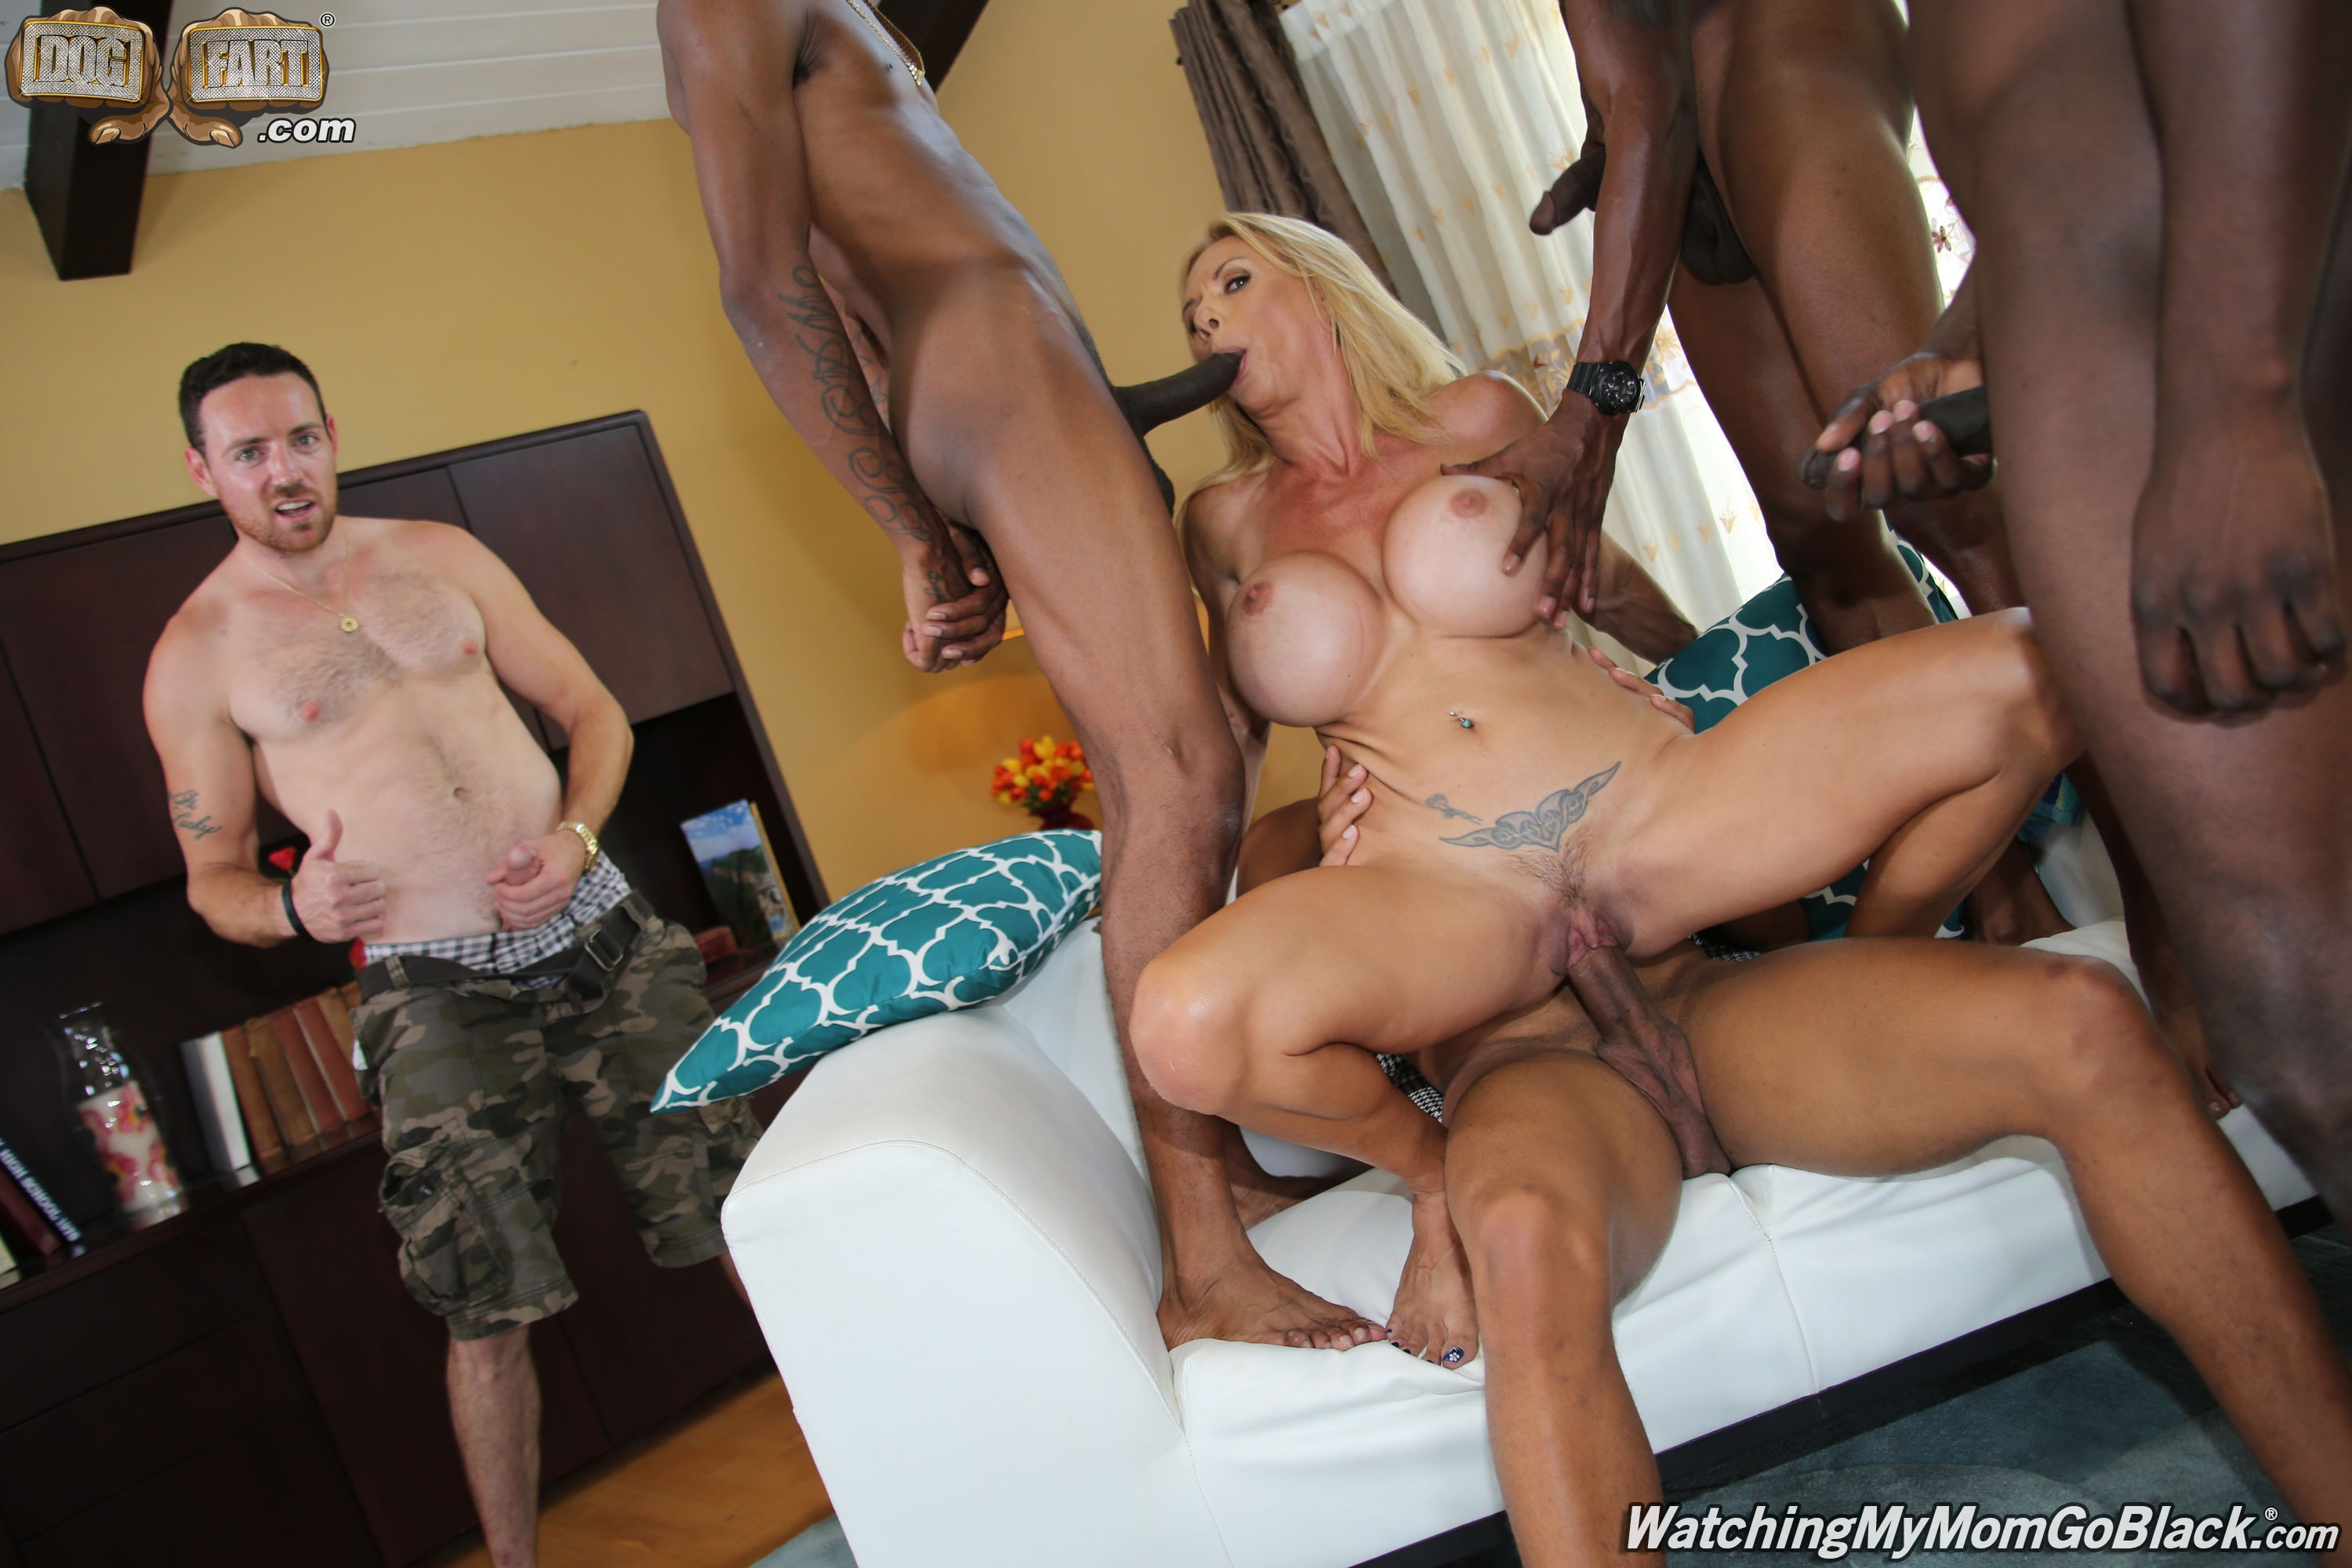 Dogfart 'Brooke Tyler - Watching My Mom Go Black' starring Brooke Tyler (photo 17)